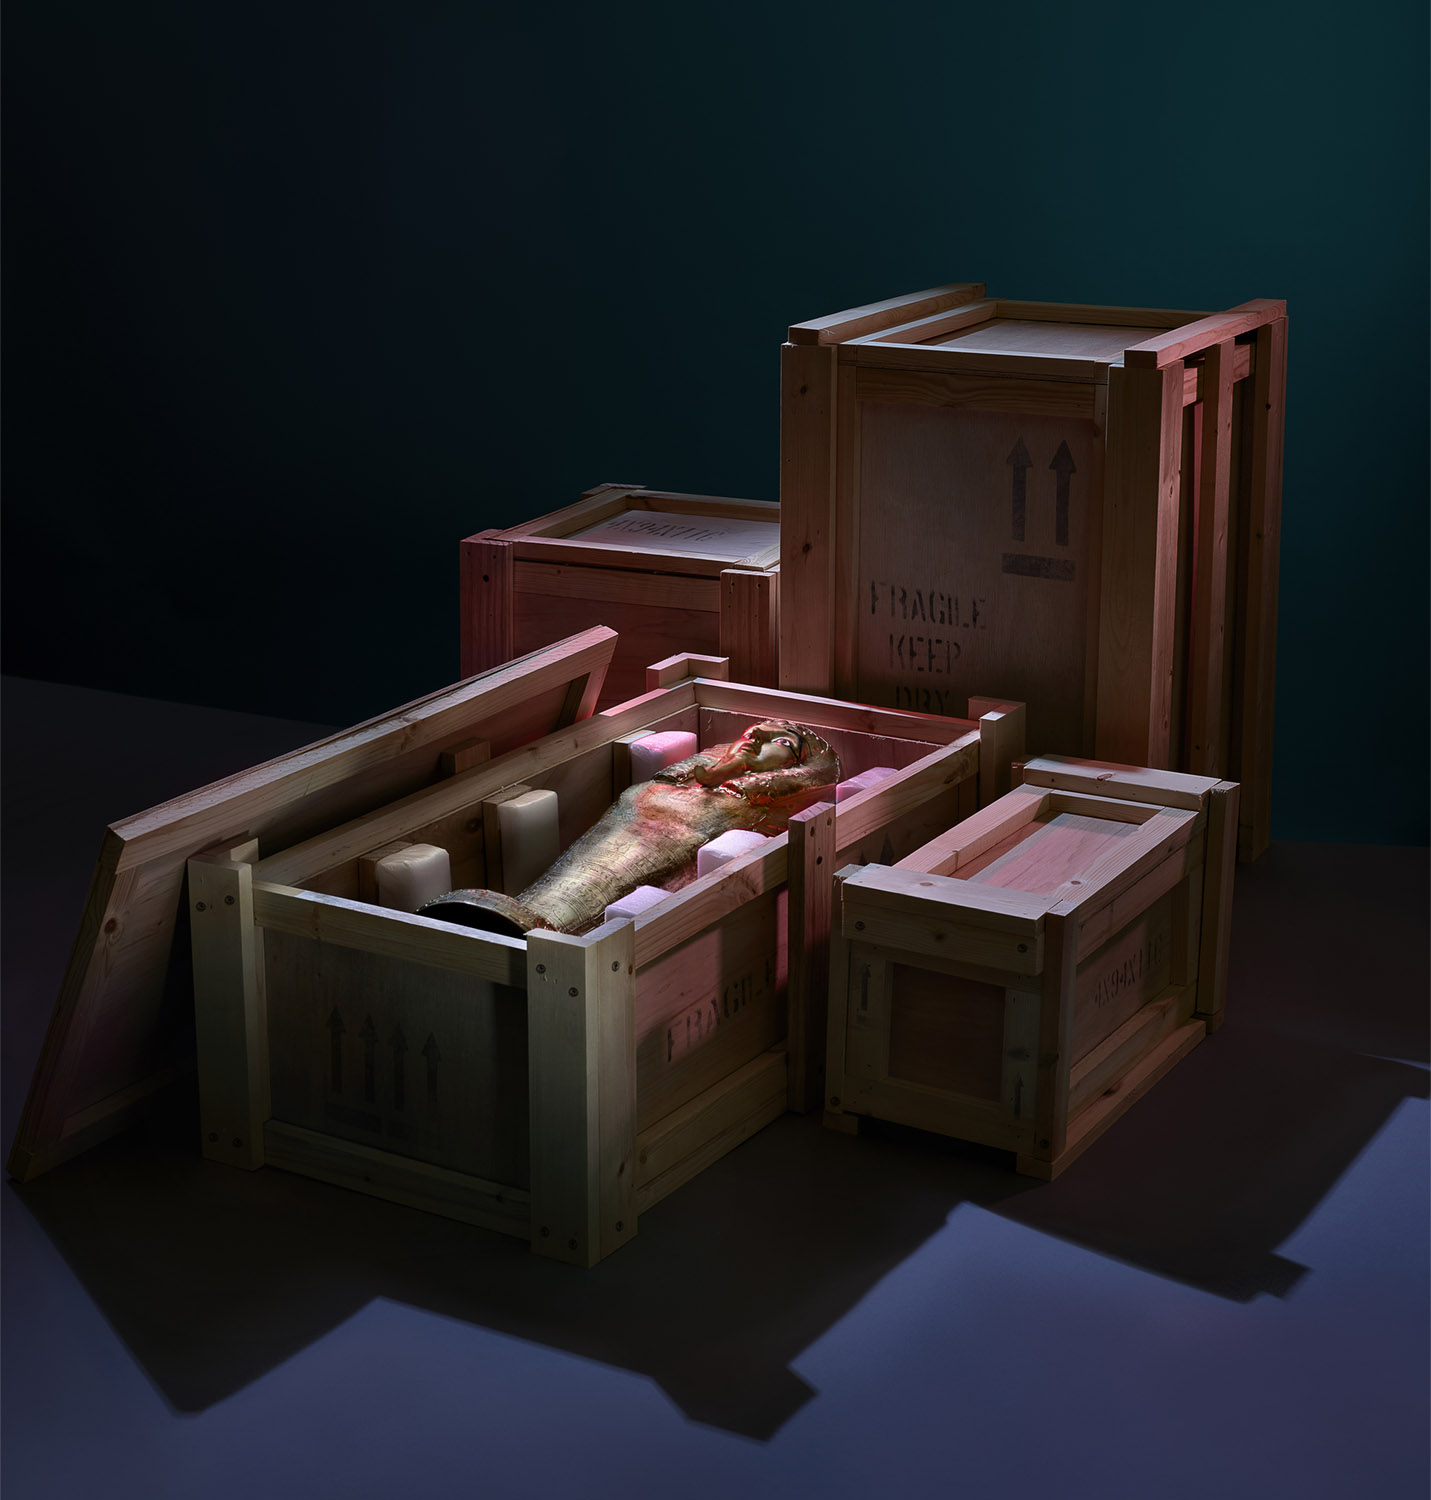 Departures_Crate_Mummy_2